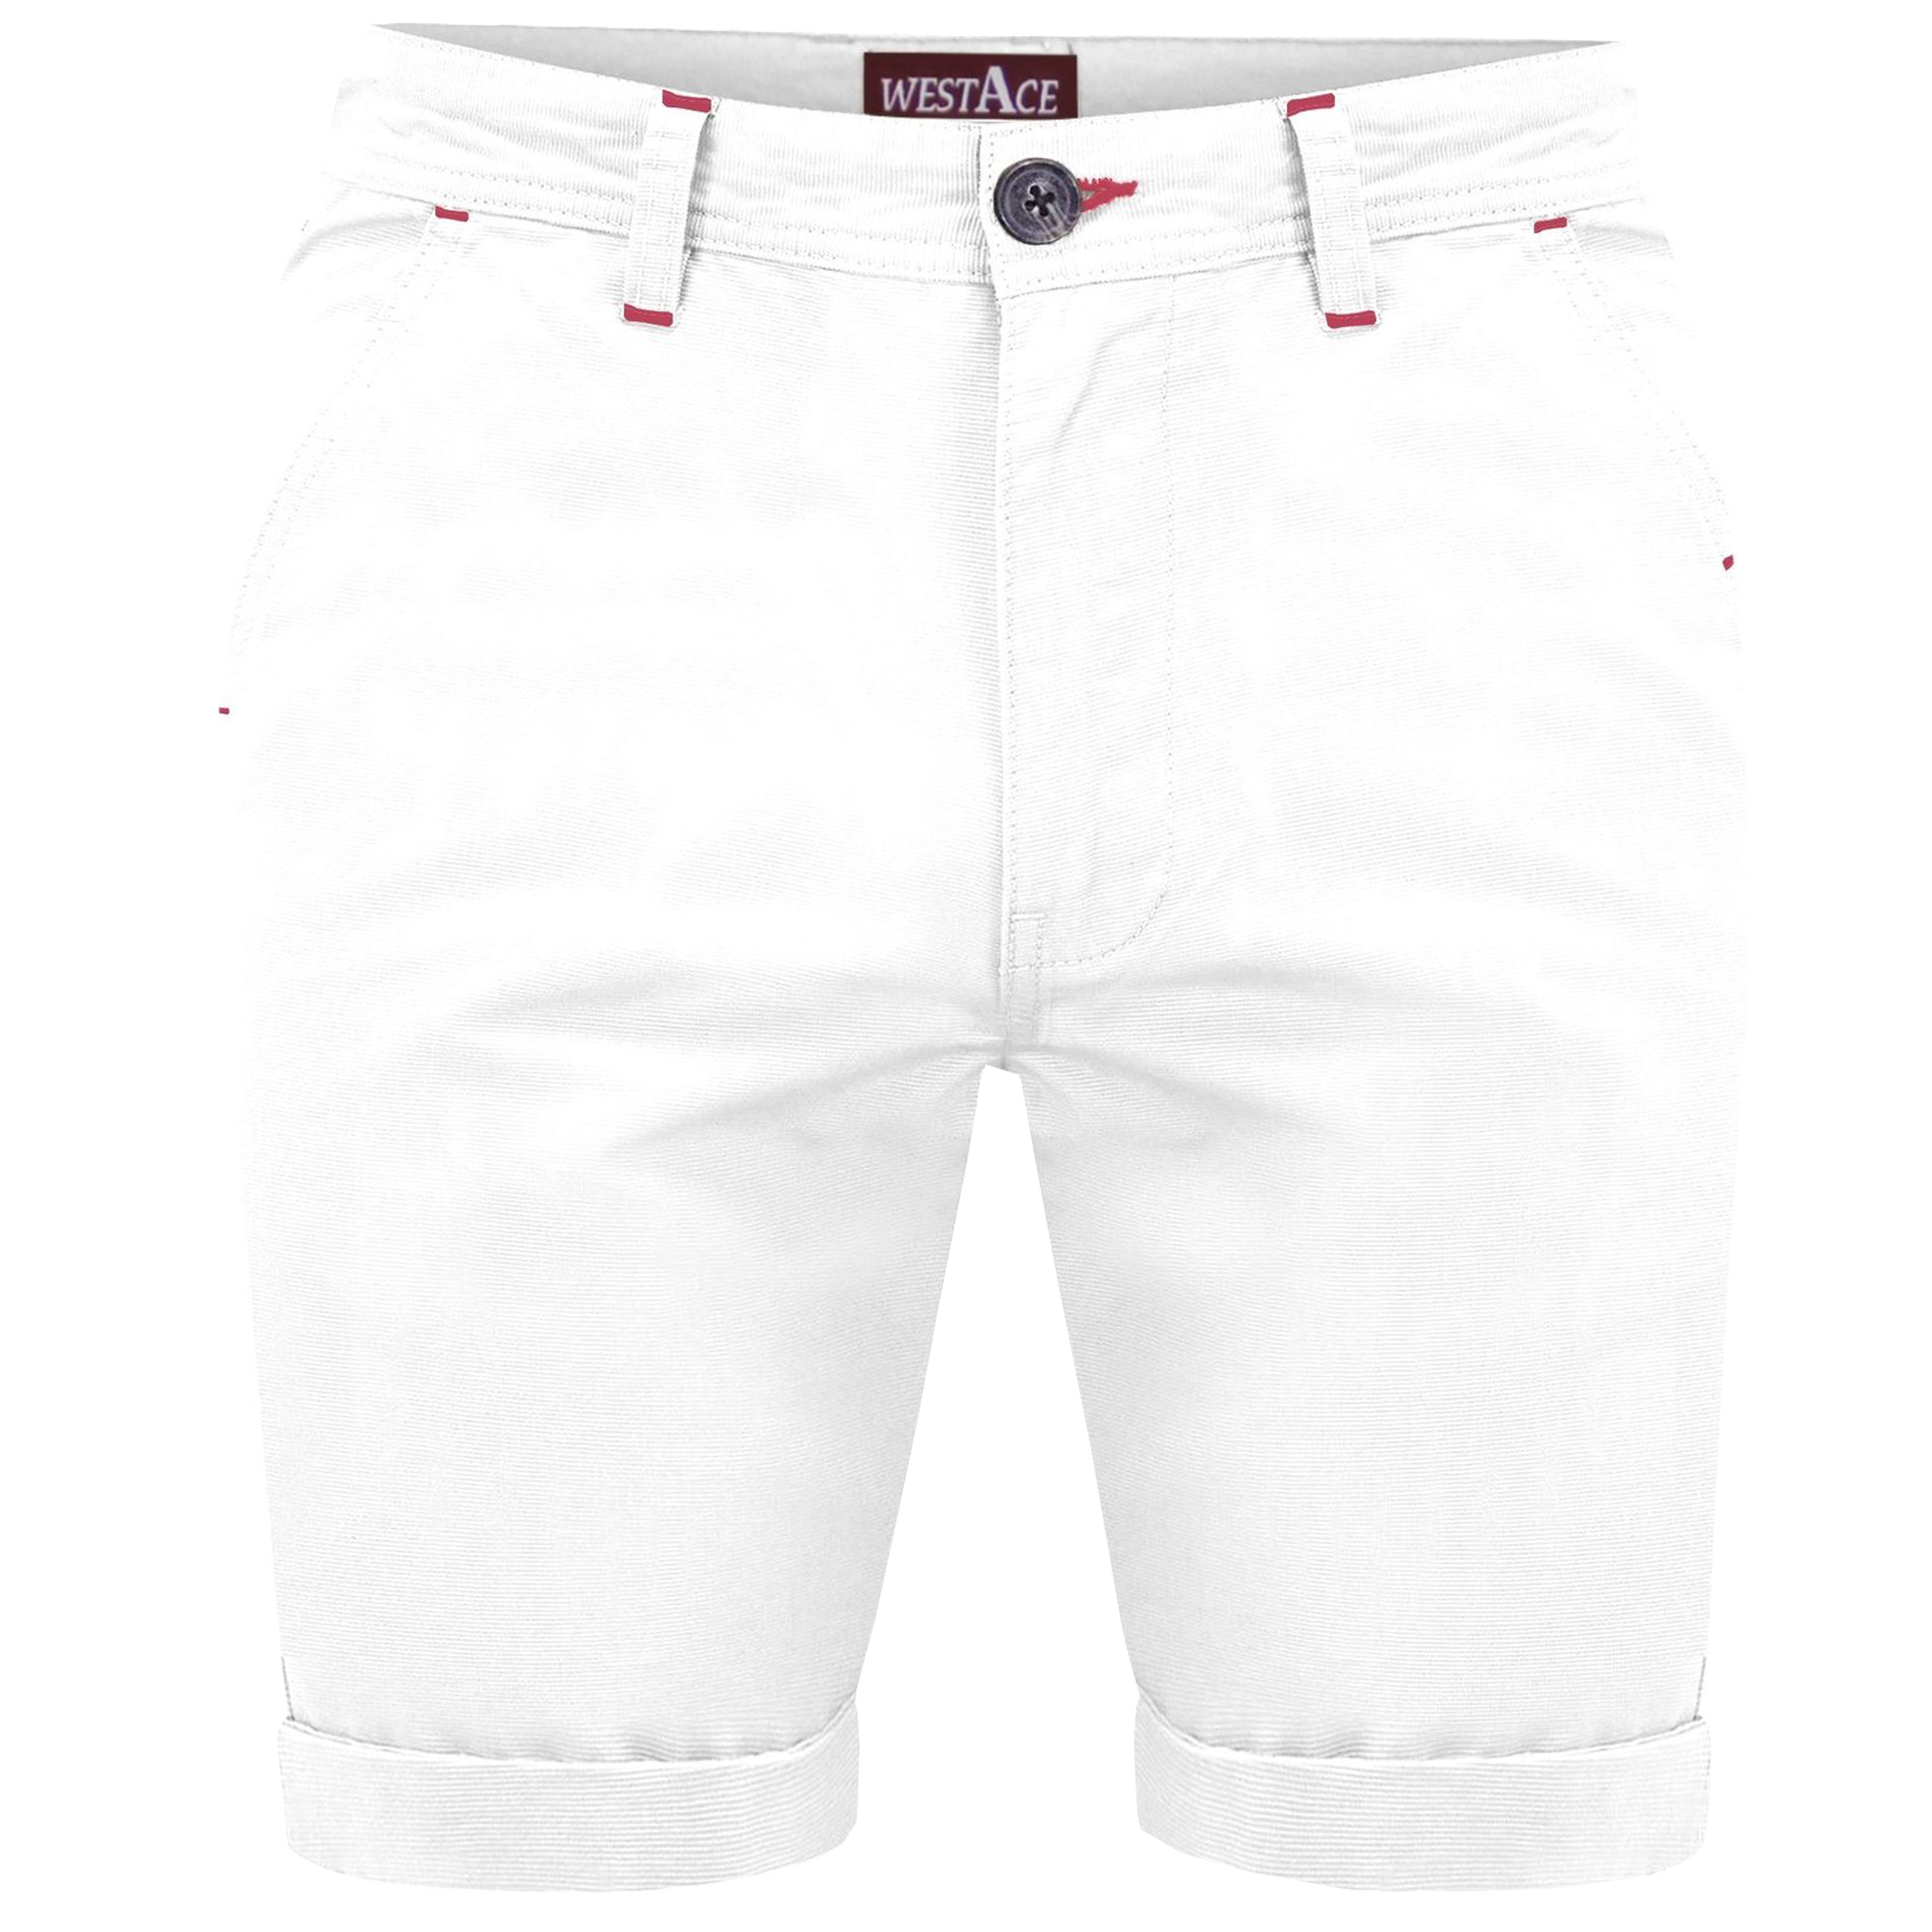 Mens Stretch Chino Shorts Westace Half Pants Knee Roll Up Sports Casual Summer